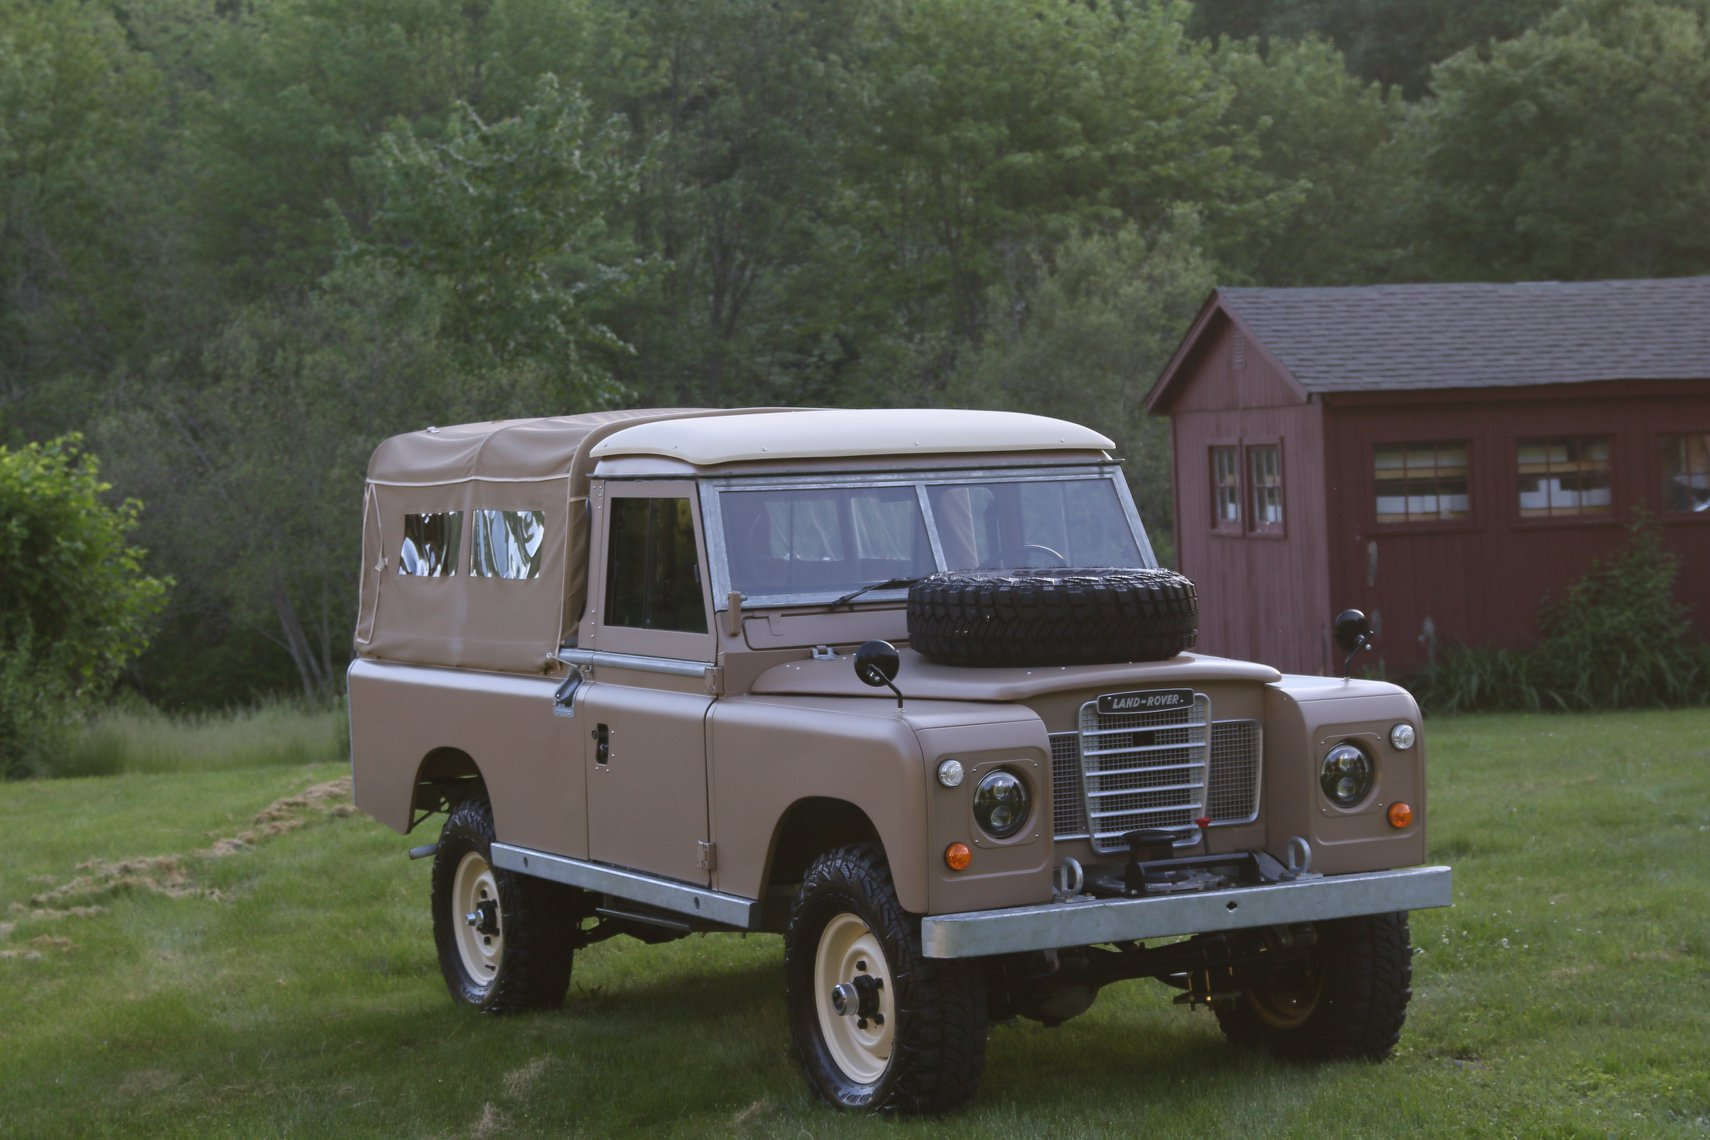 1972 Land Rover Series II 109 Inch Pickup Restoration Photo at